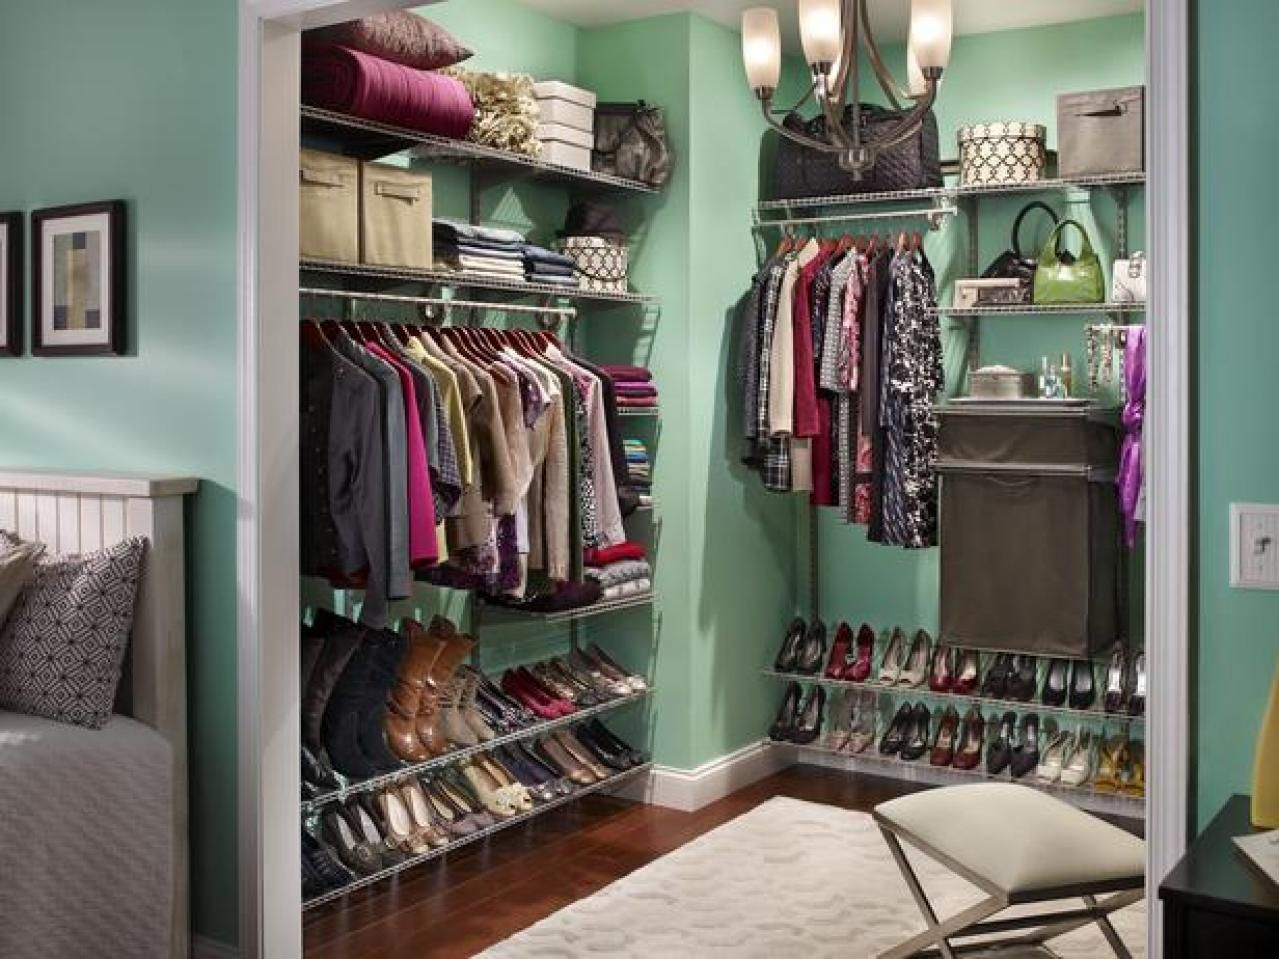 Make Your Closet Look Like a Chic